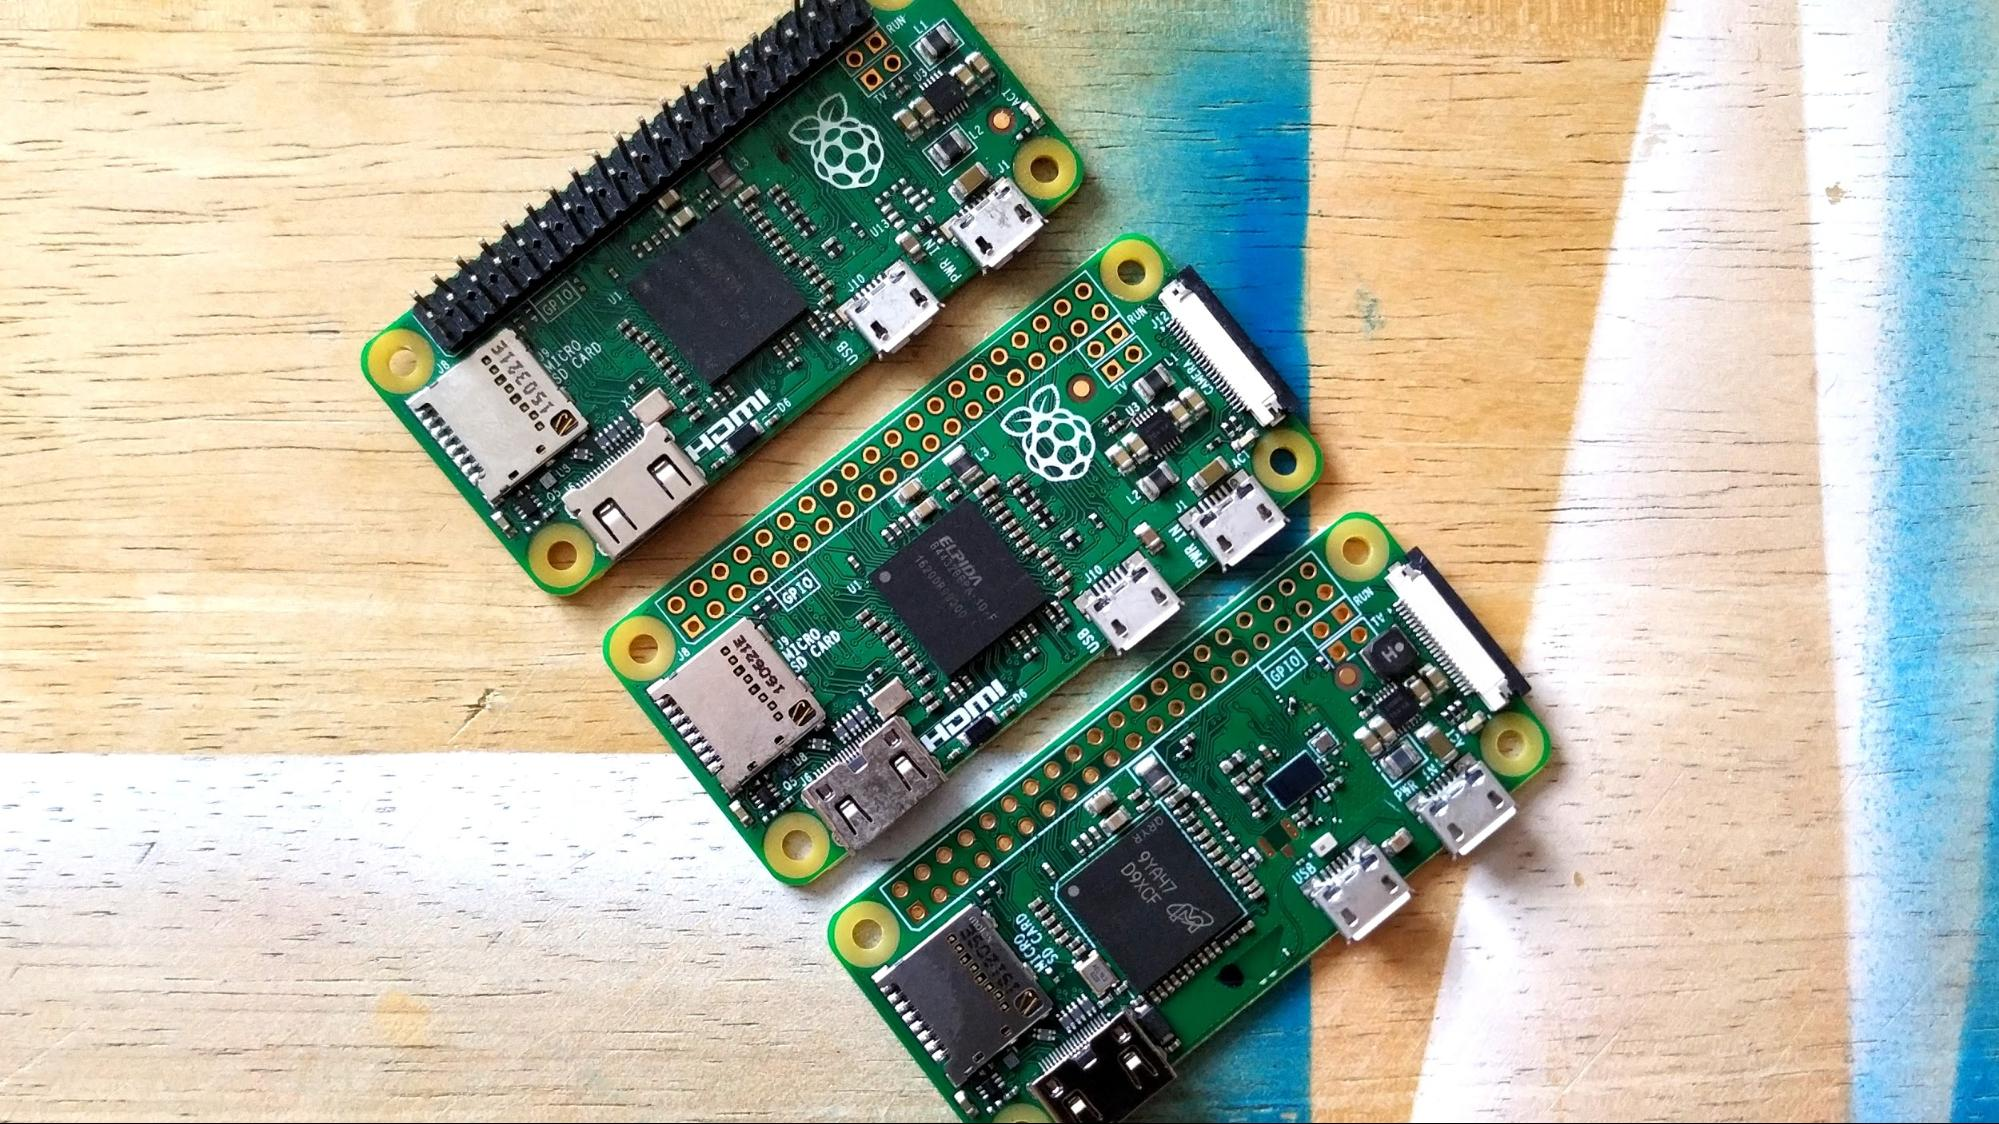 Raspberry Pi Zero Guide: Projects, Specs, GPIO, Getting Started